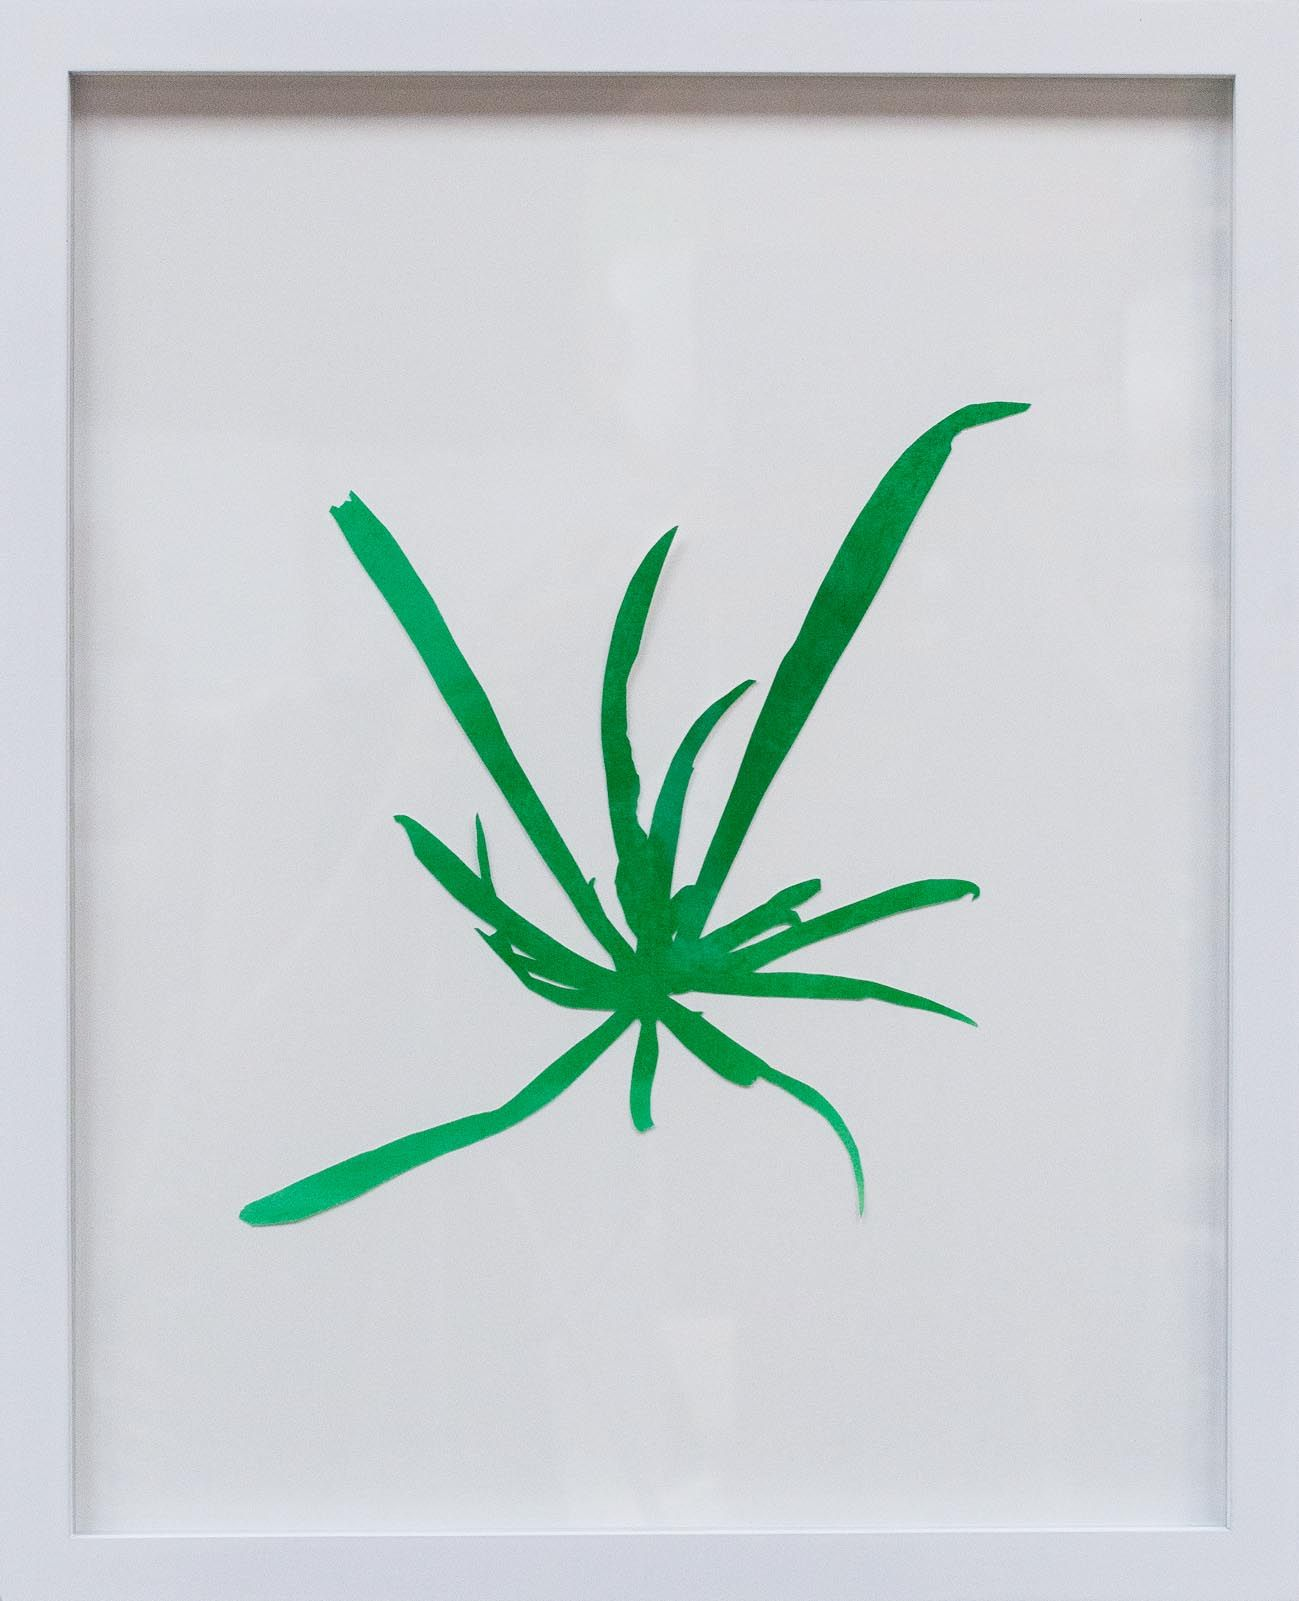 Hannah Cole  St. Augustine Grass, 2018  watercolor on cut paper  Framed: 20h x 16w in 50.80h x 40.64w cm  HC_036